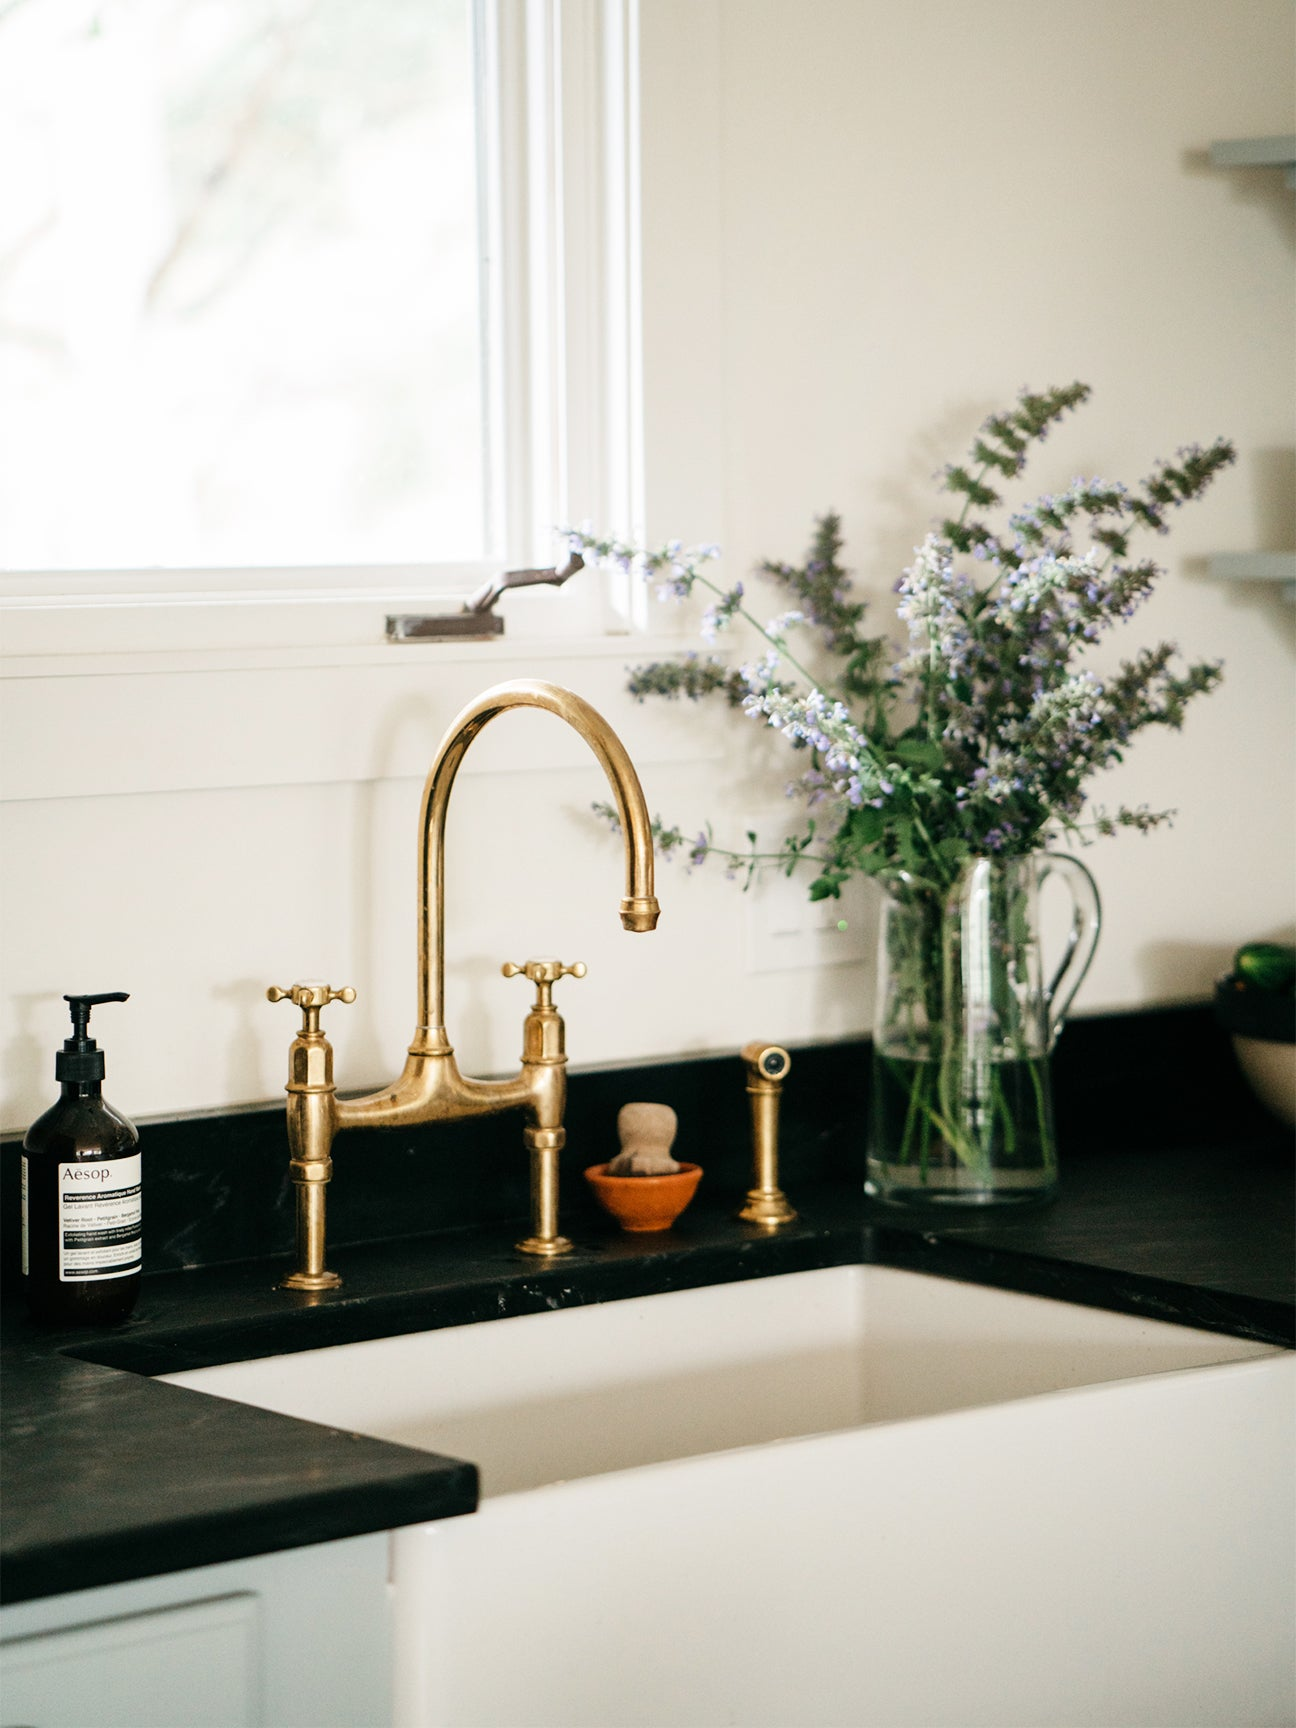 close up shot of a kitchen farmhouse sink with brass faucet